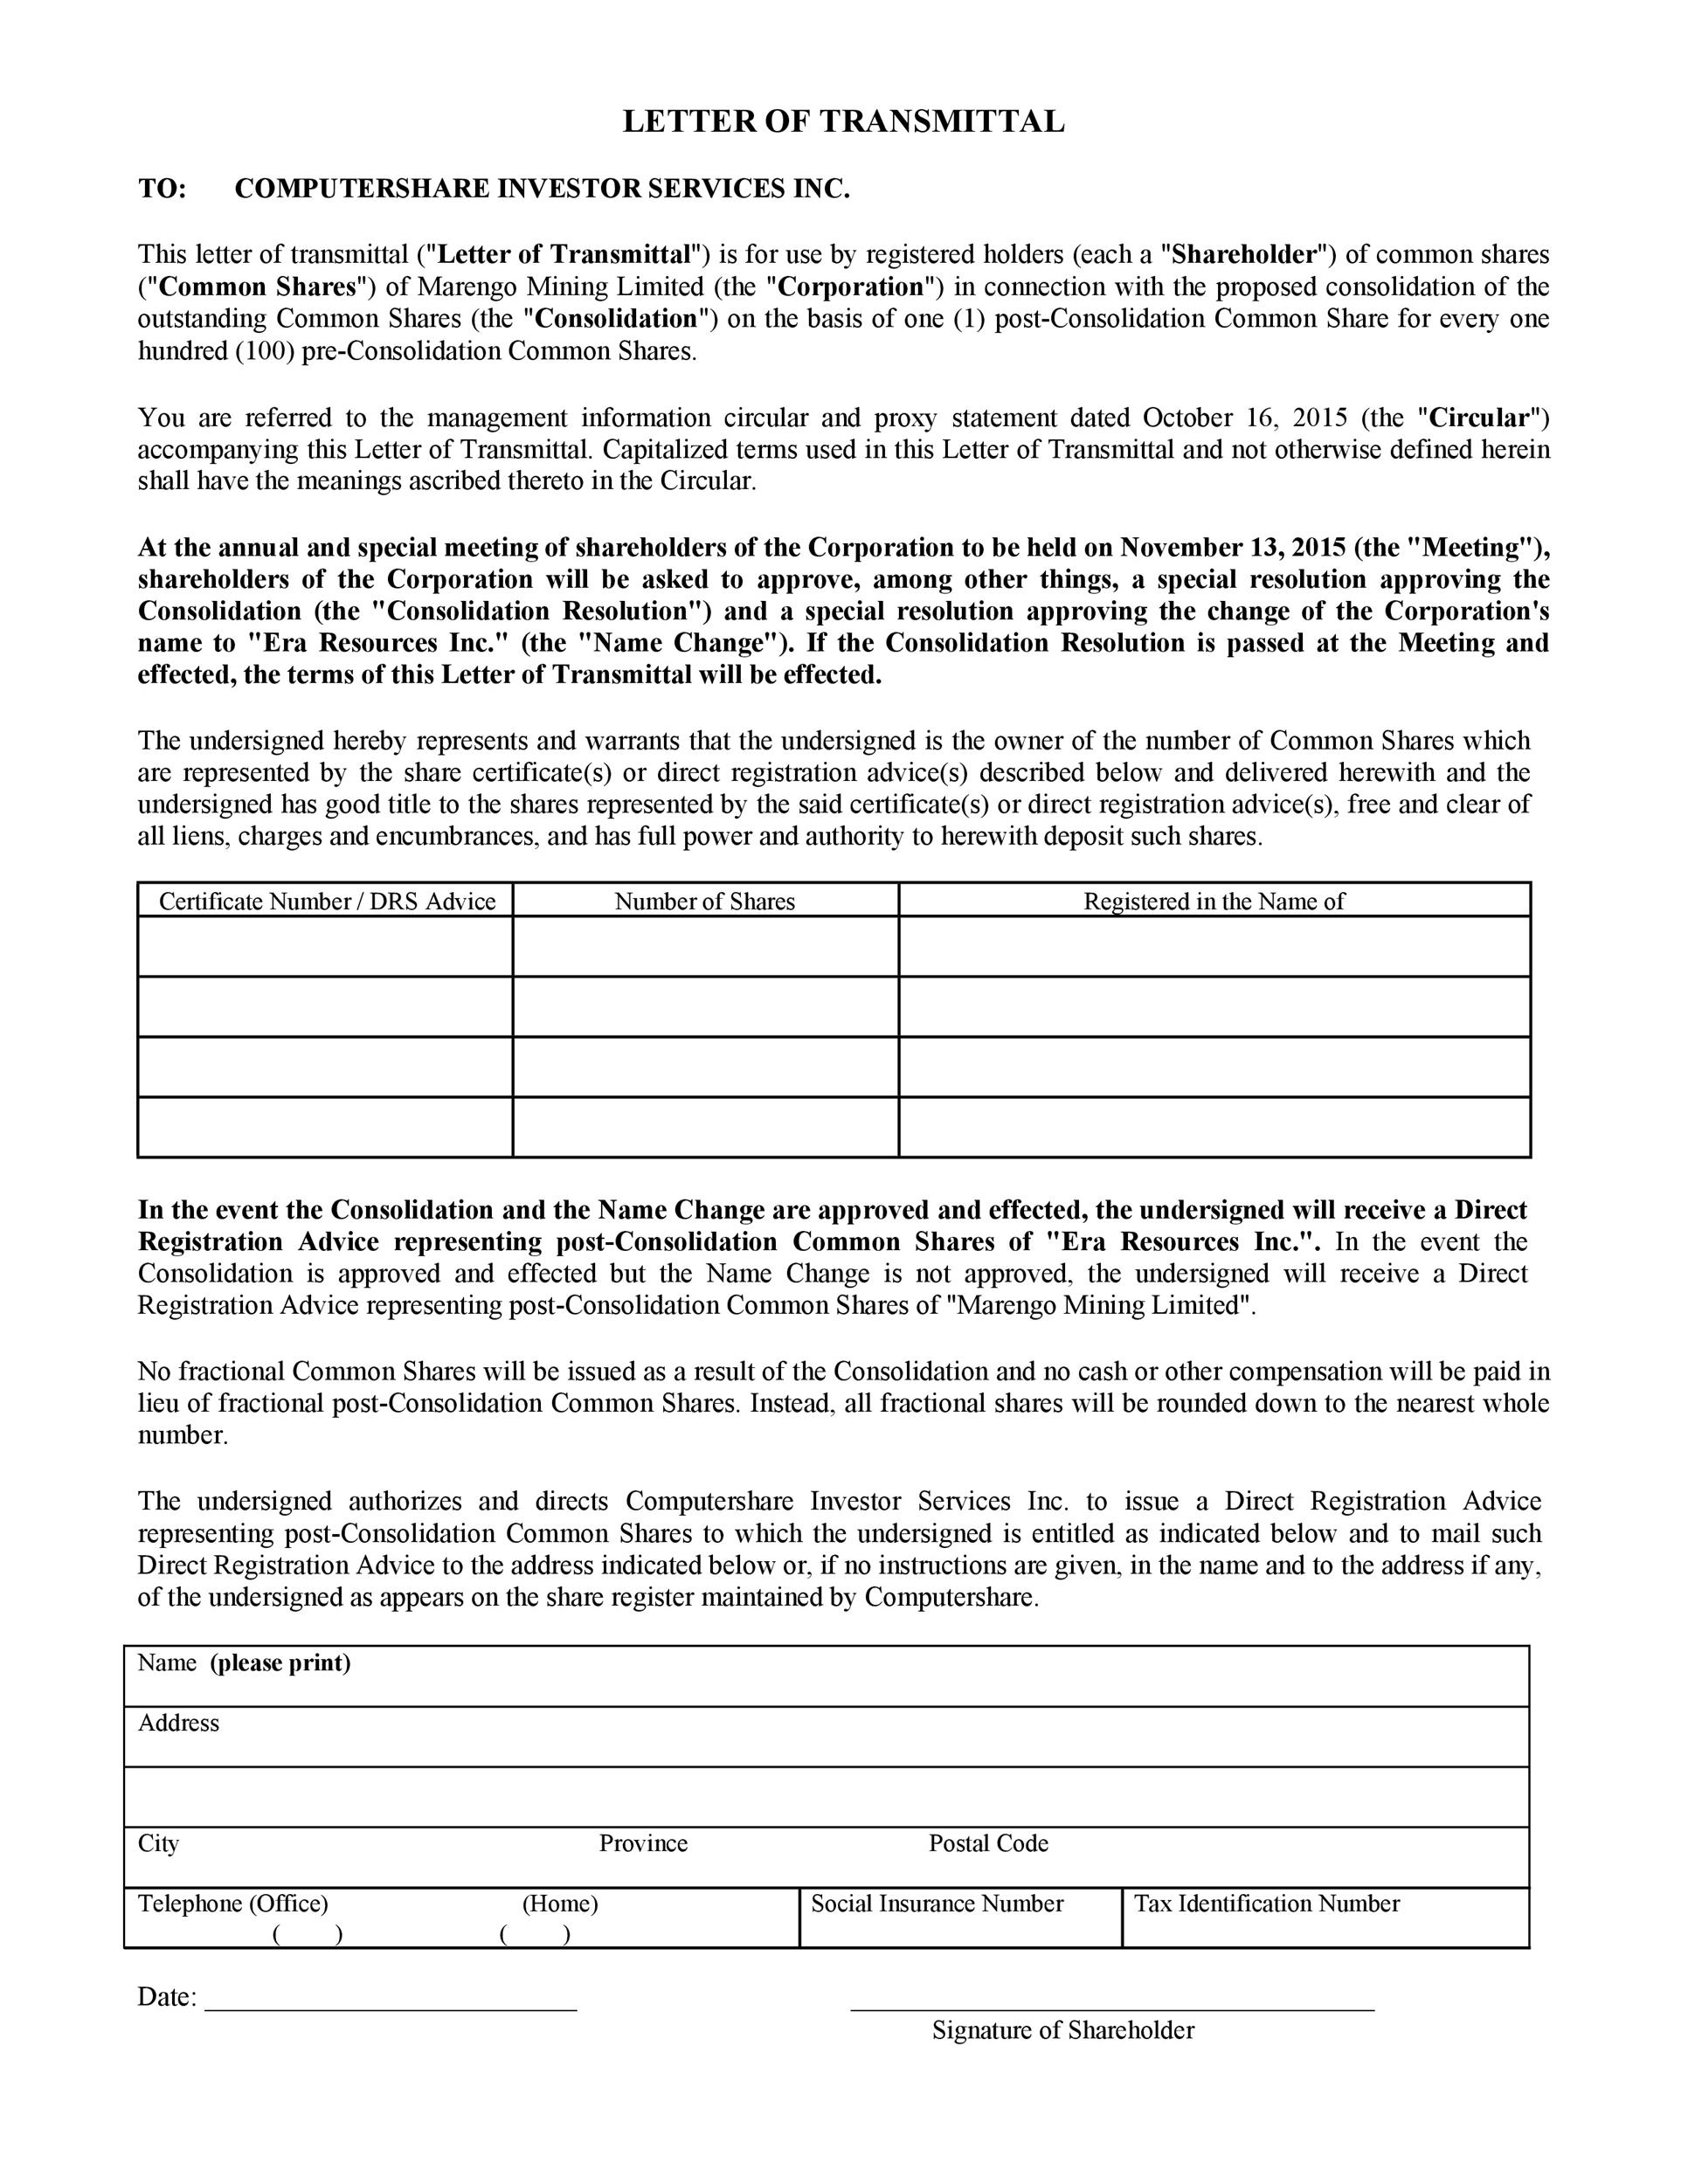 Free letter of transmittal template 16